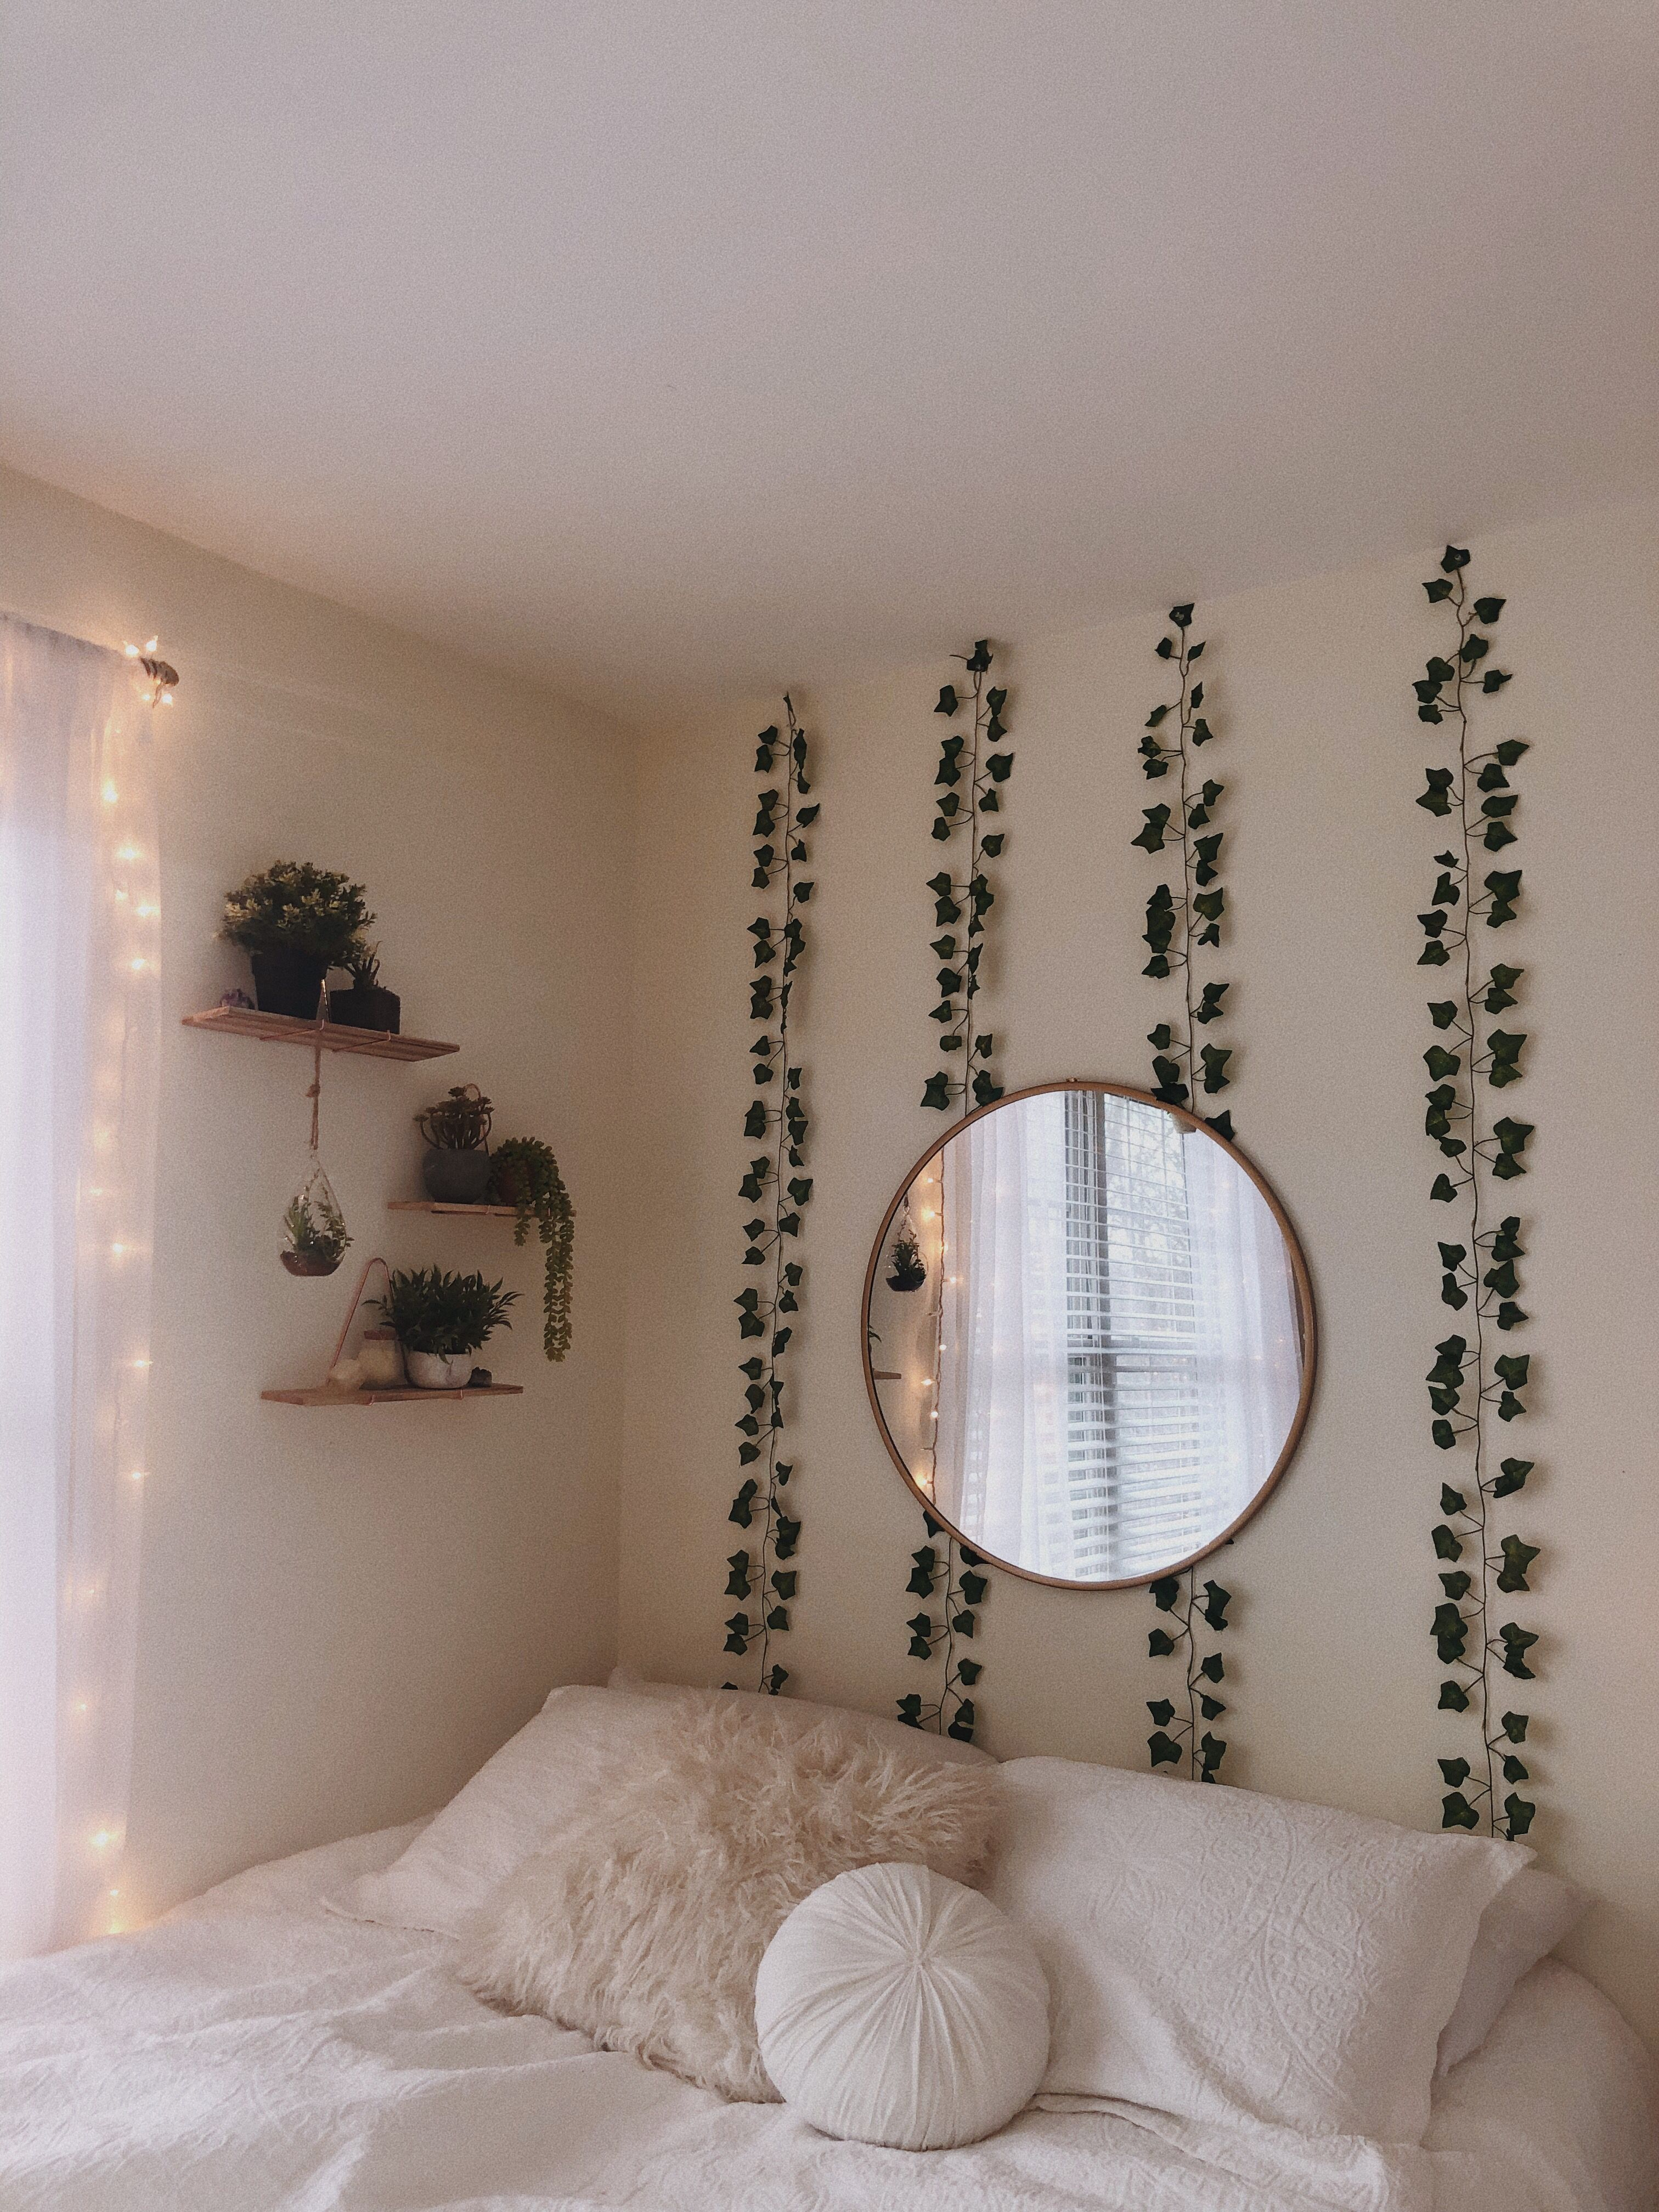 avery may #roominspo